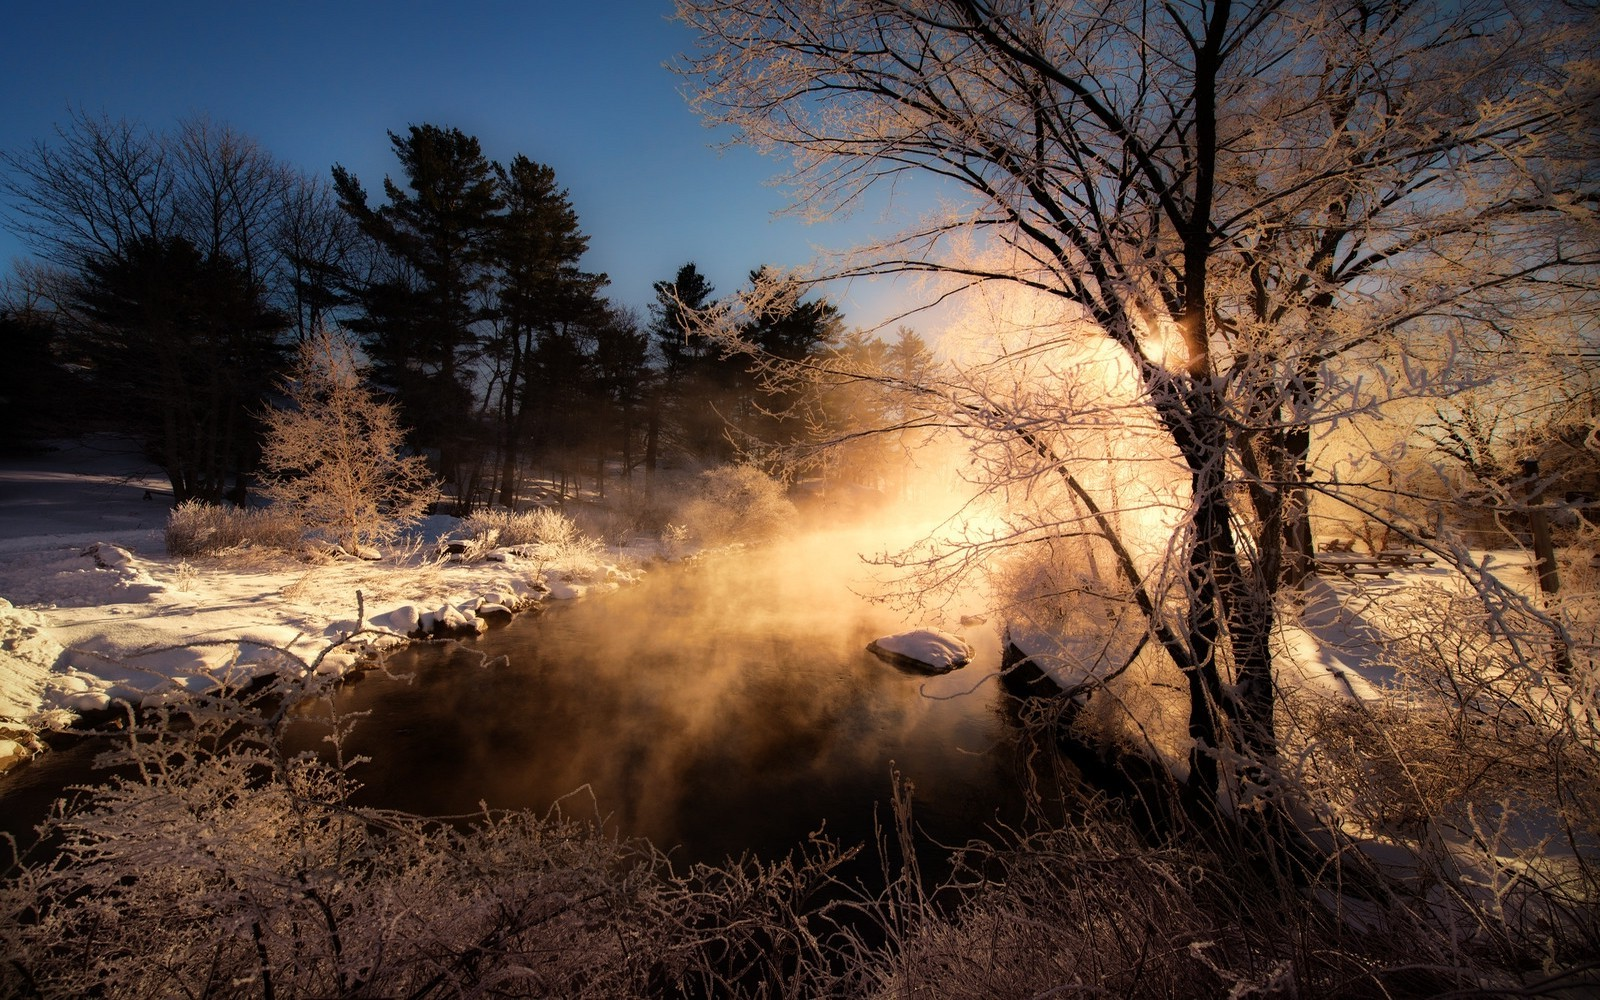 Fantasy Forest 3d Desktop Wallpaper Sunrise Nature Mist Winter Landscape Morning Trees